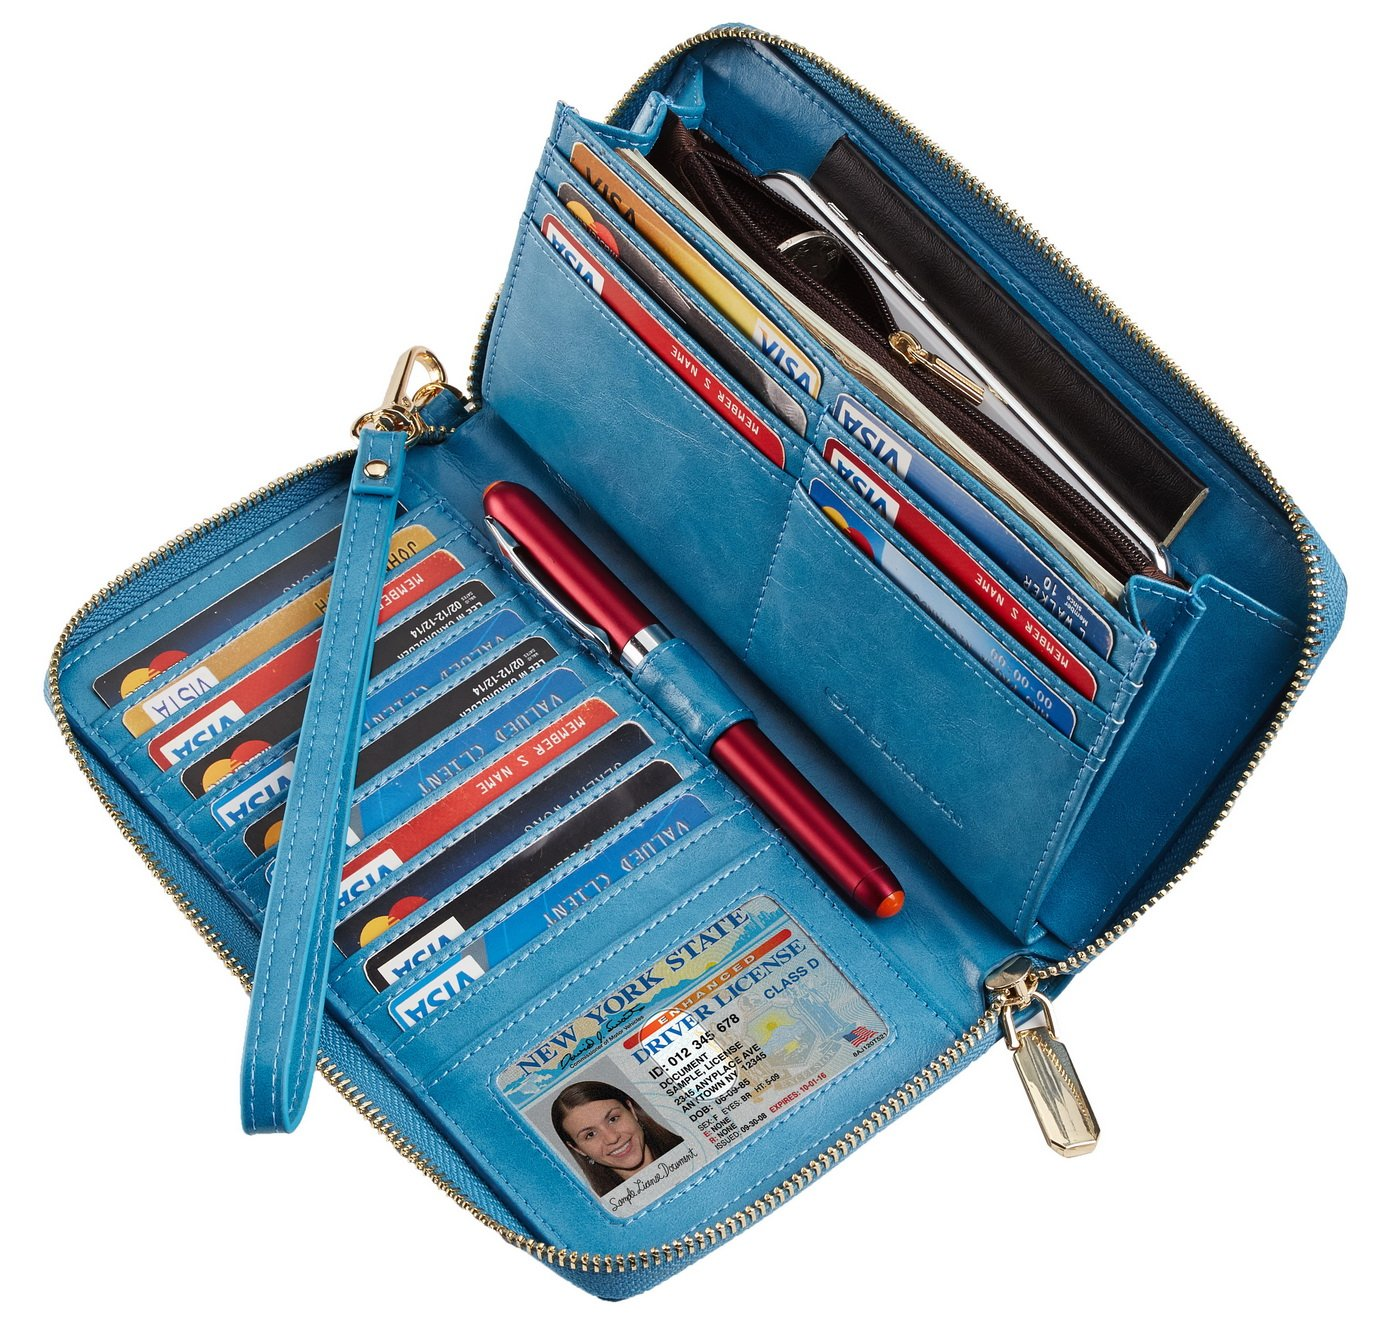 2511bacea066 SimpacX Chelmon Womens RFID Blocking Wallet Genuine Leather Zip Around  Clutch Large Travel Wallet Purse Passport Holder (wax blue)